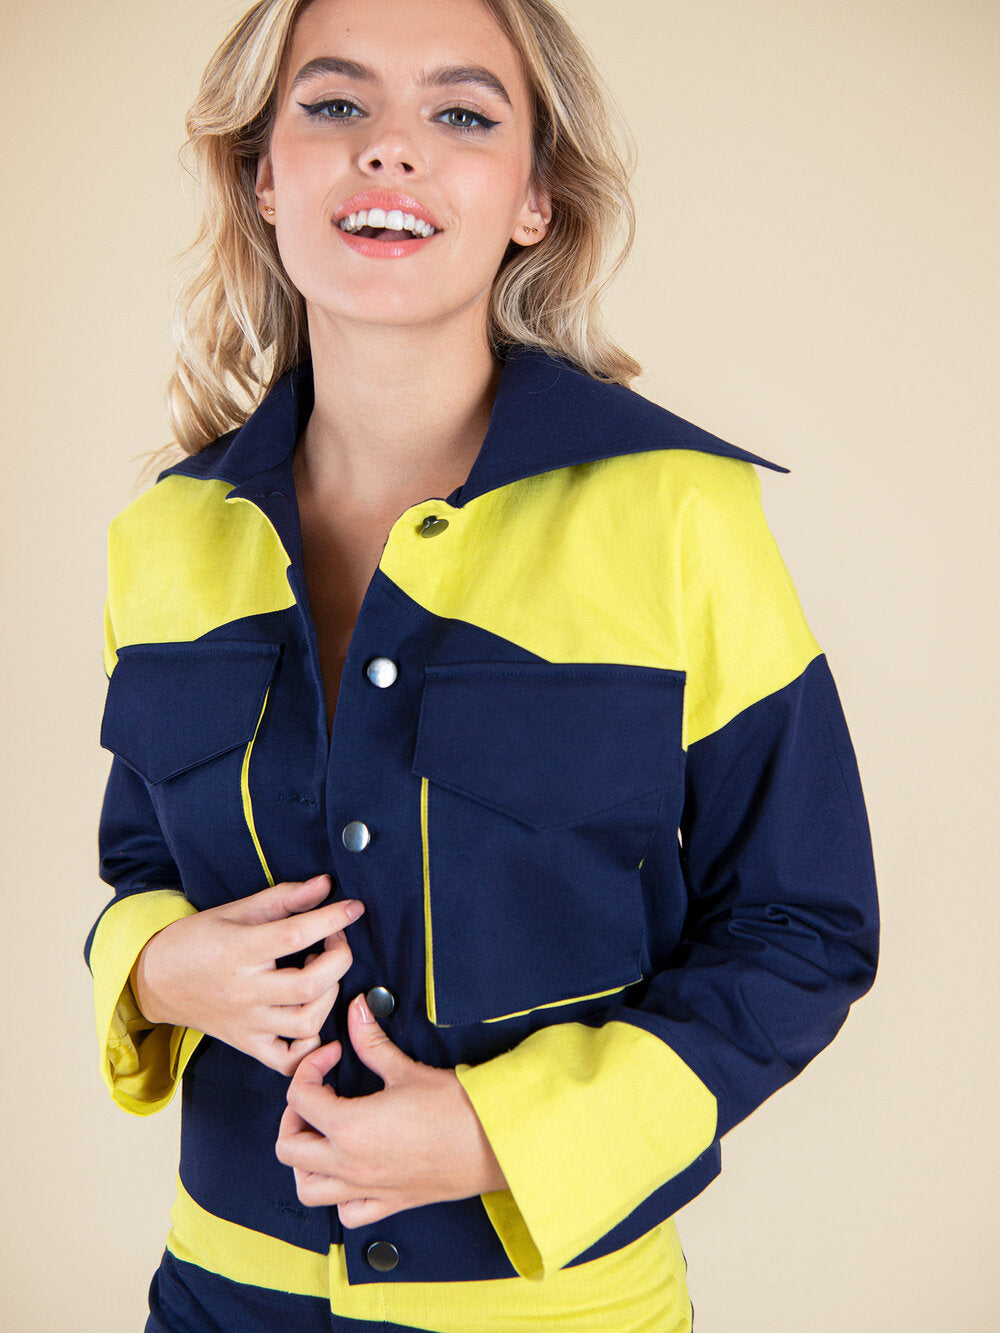 Happy woman wearing a navy blue upcycled bomber jacket with bright yellow details and big front pockets